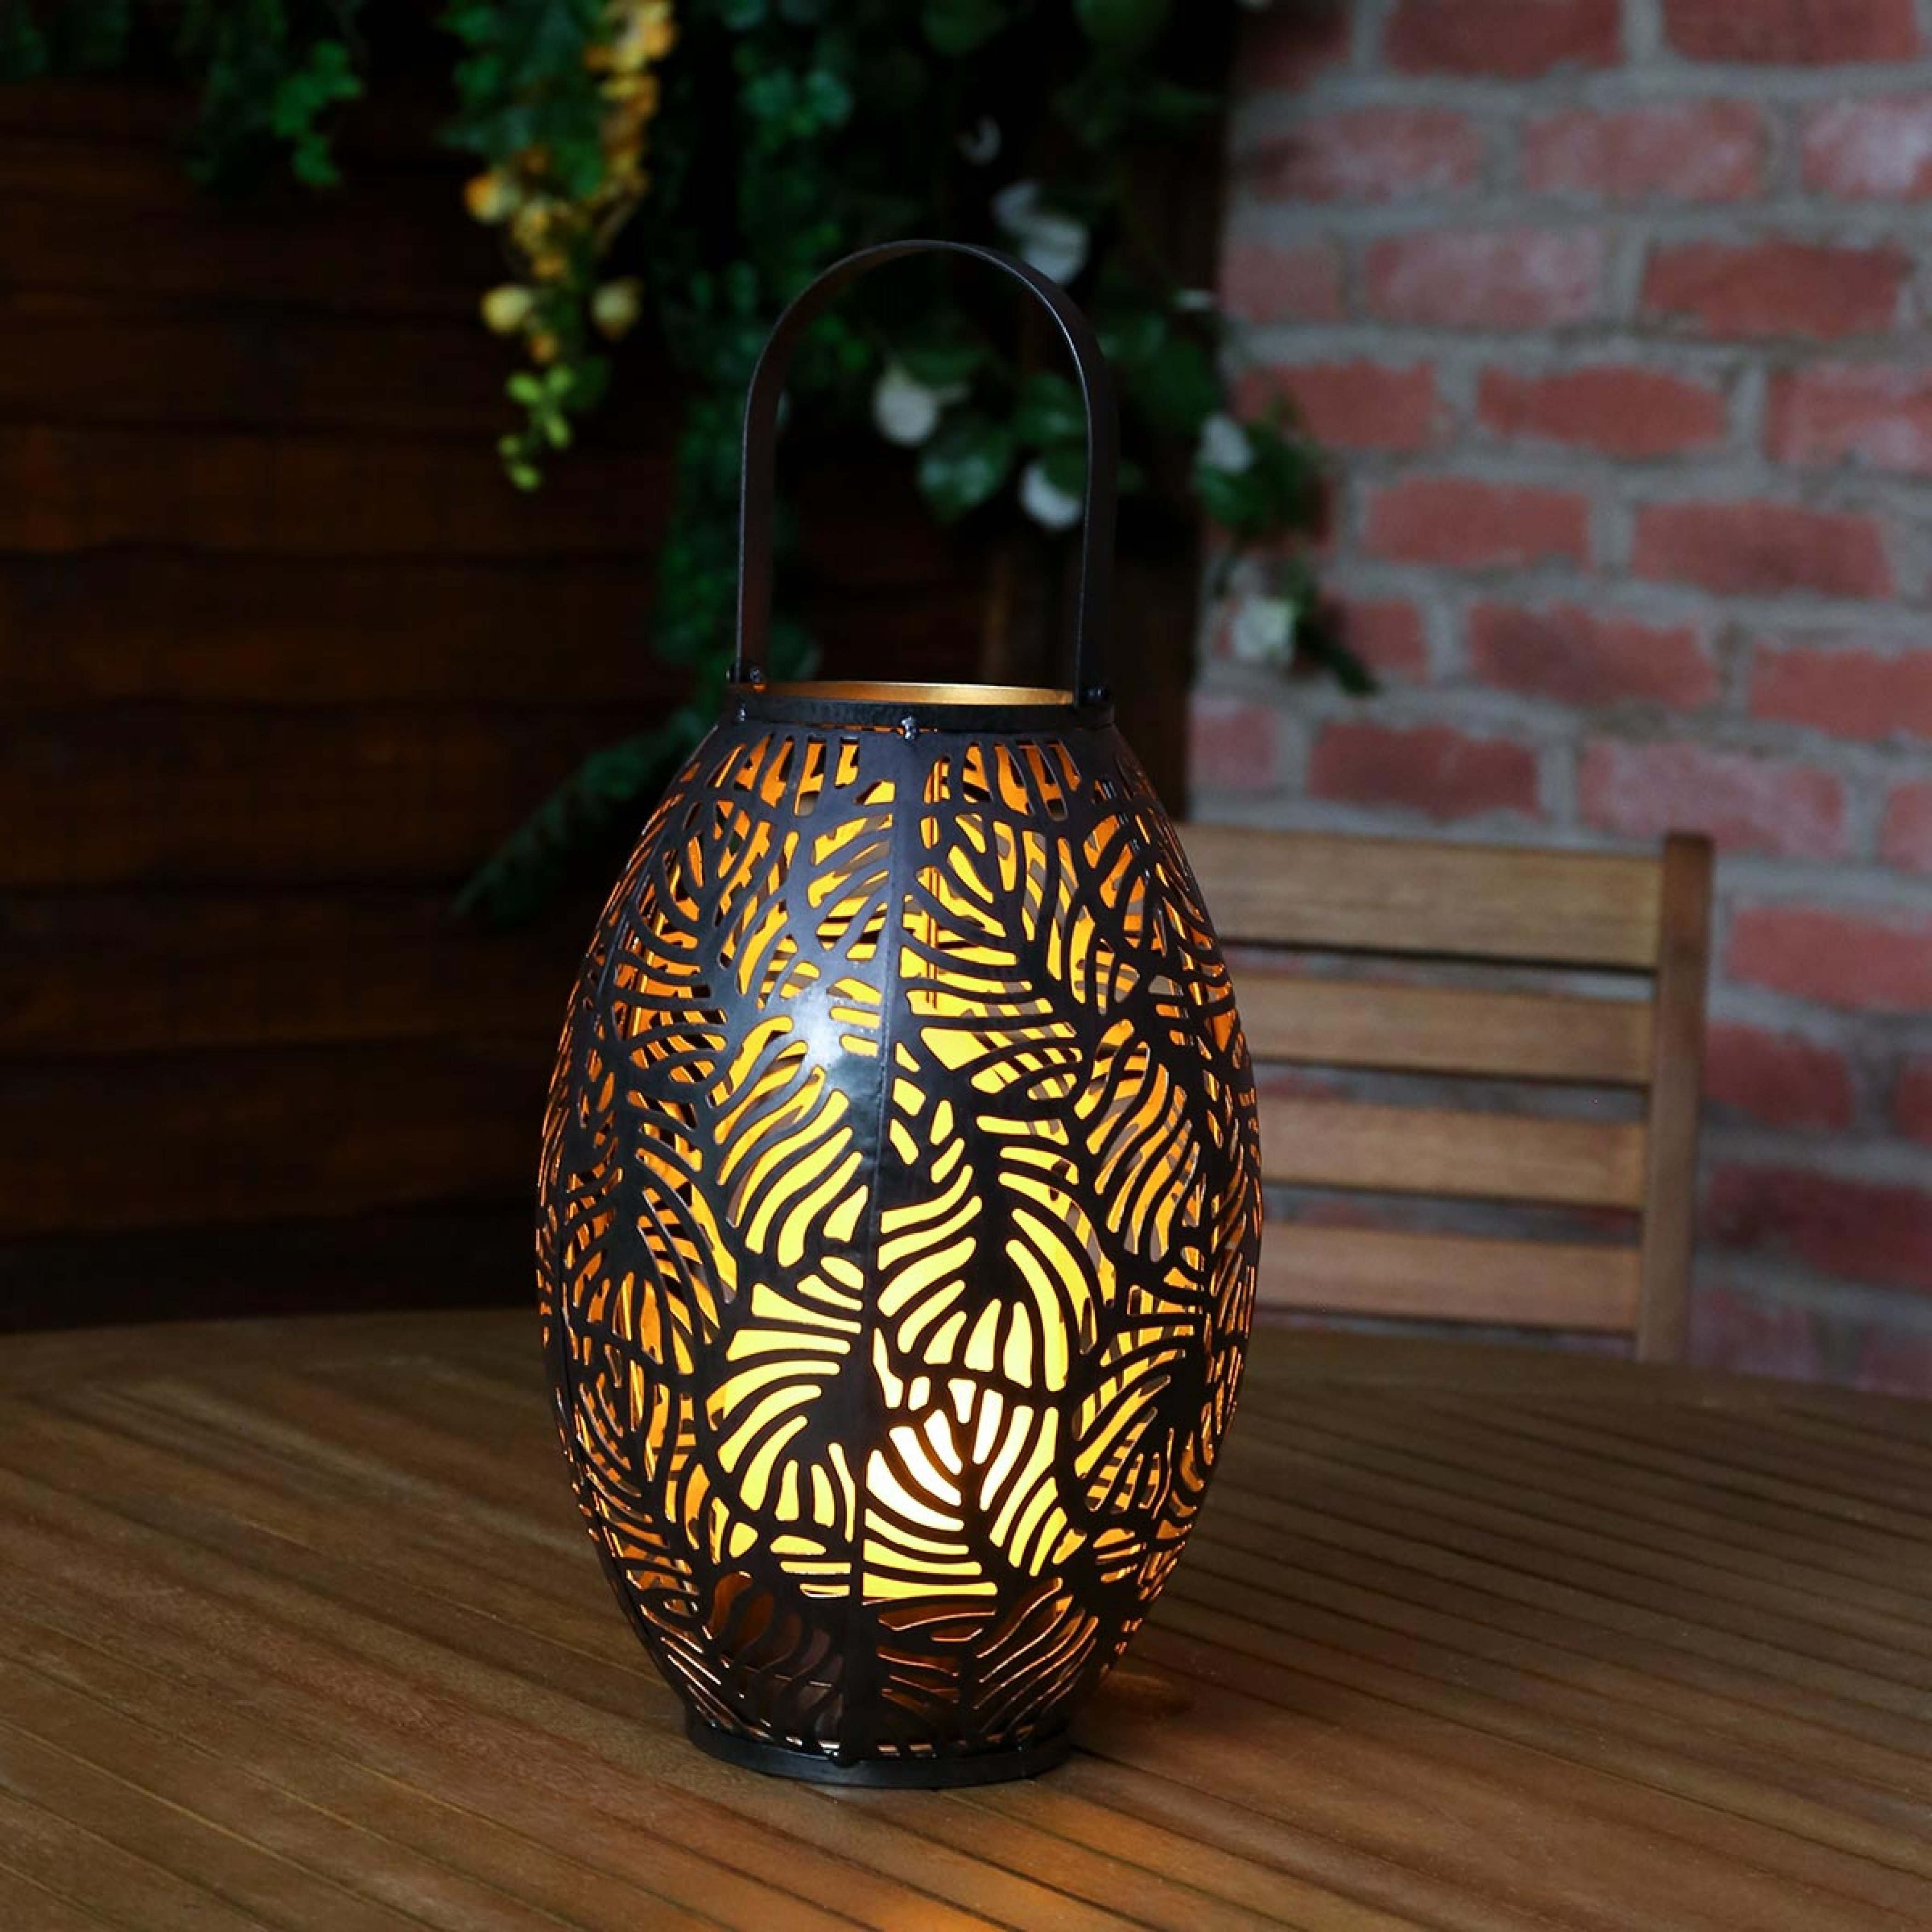 Outdoor Battery Bronze Rustic Cool Flame Lantern Pertaining To Famous Rustic Outdoor Electric Lanterns (View 12 of 20)